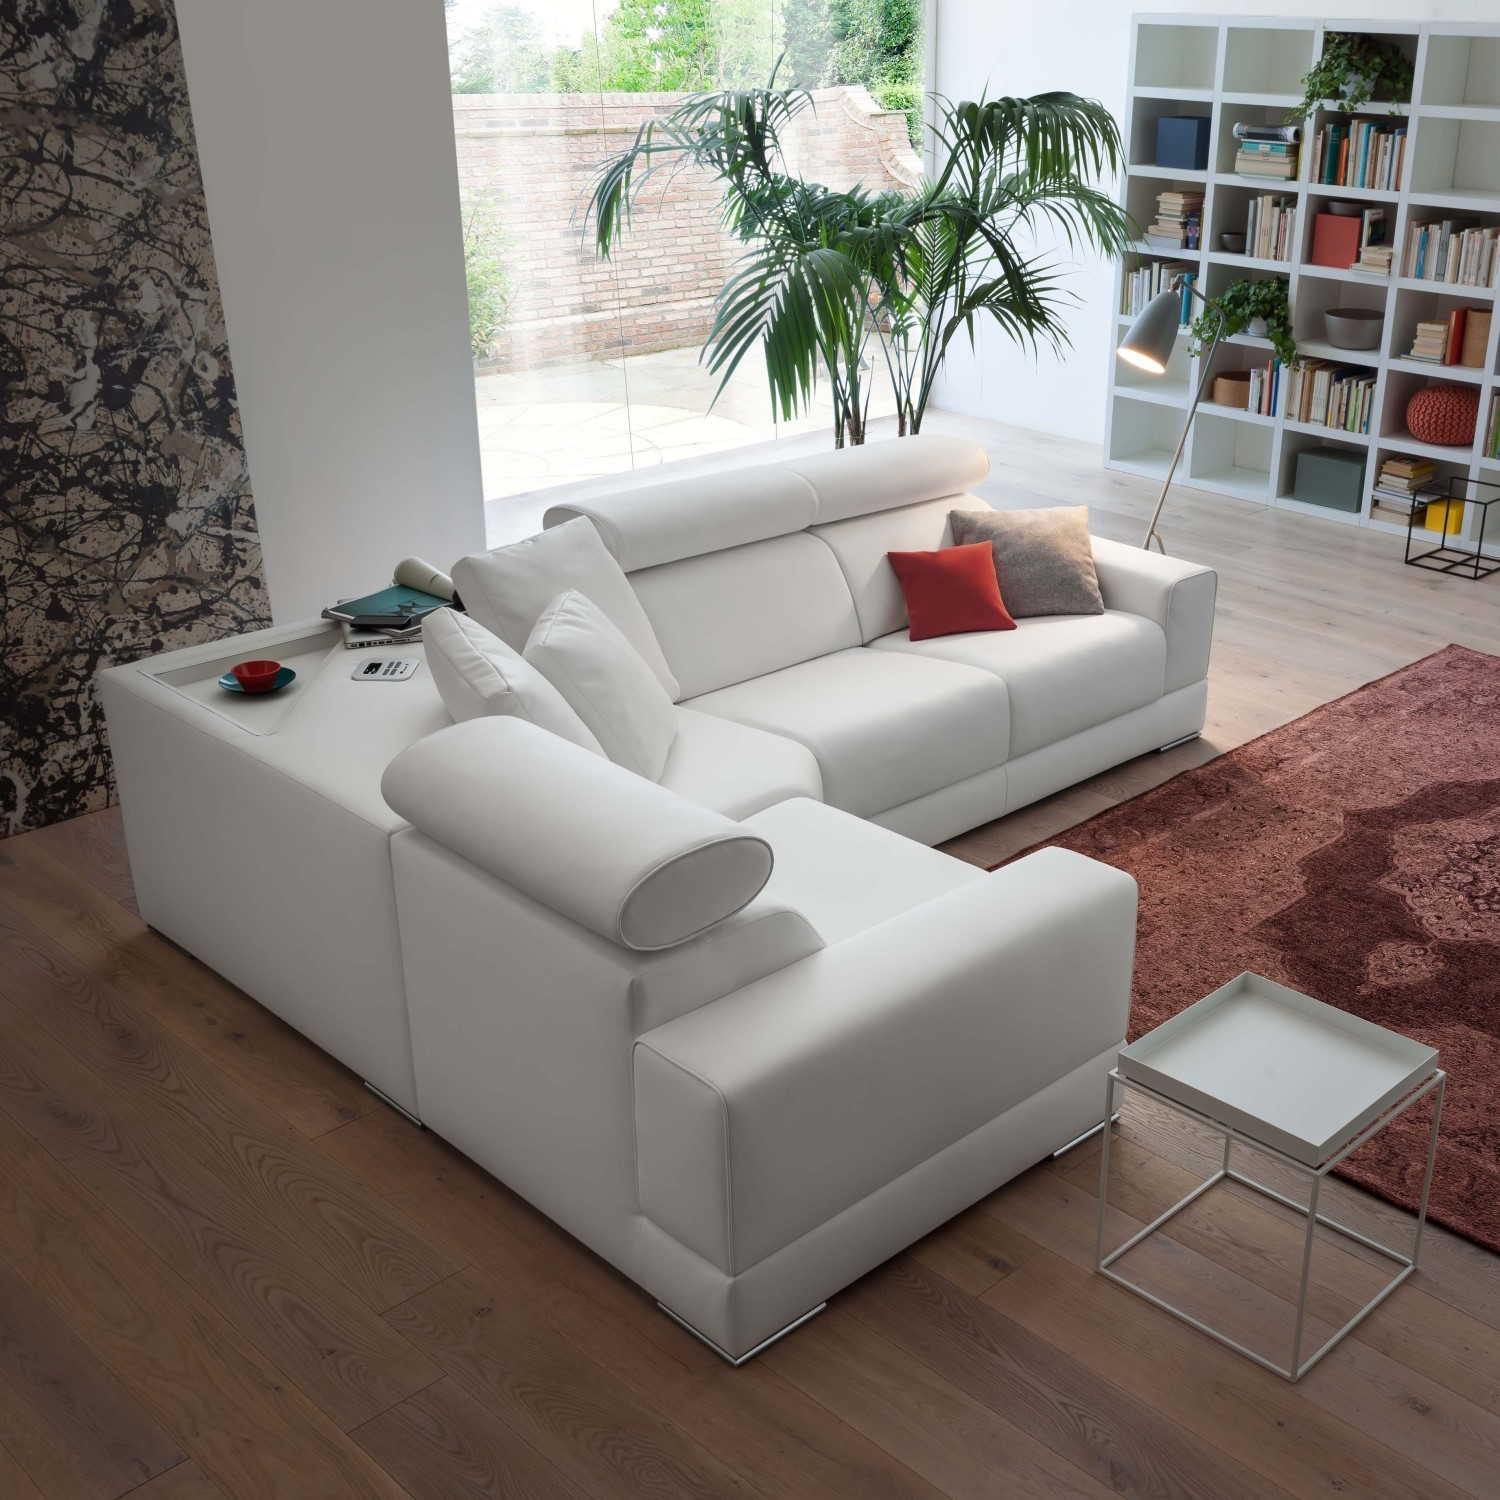 arredaclick blog casa in stile hi tech mix di